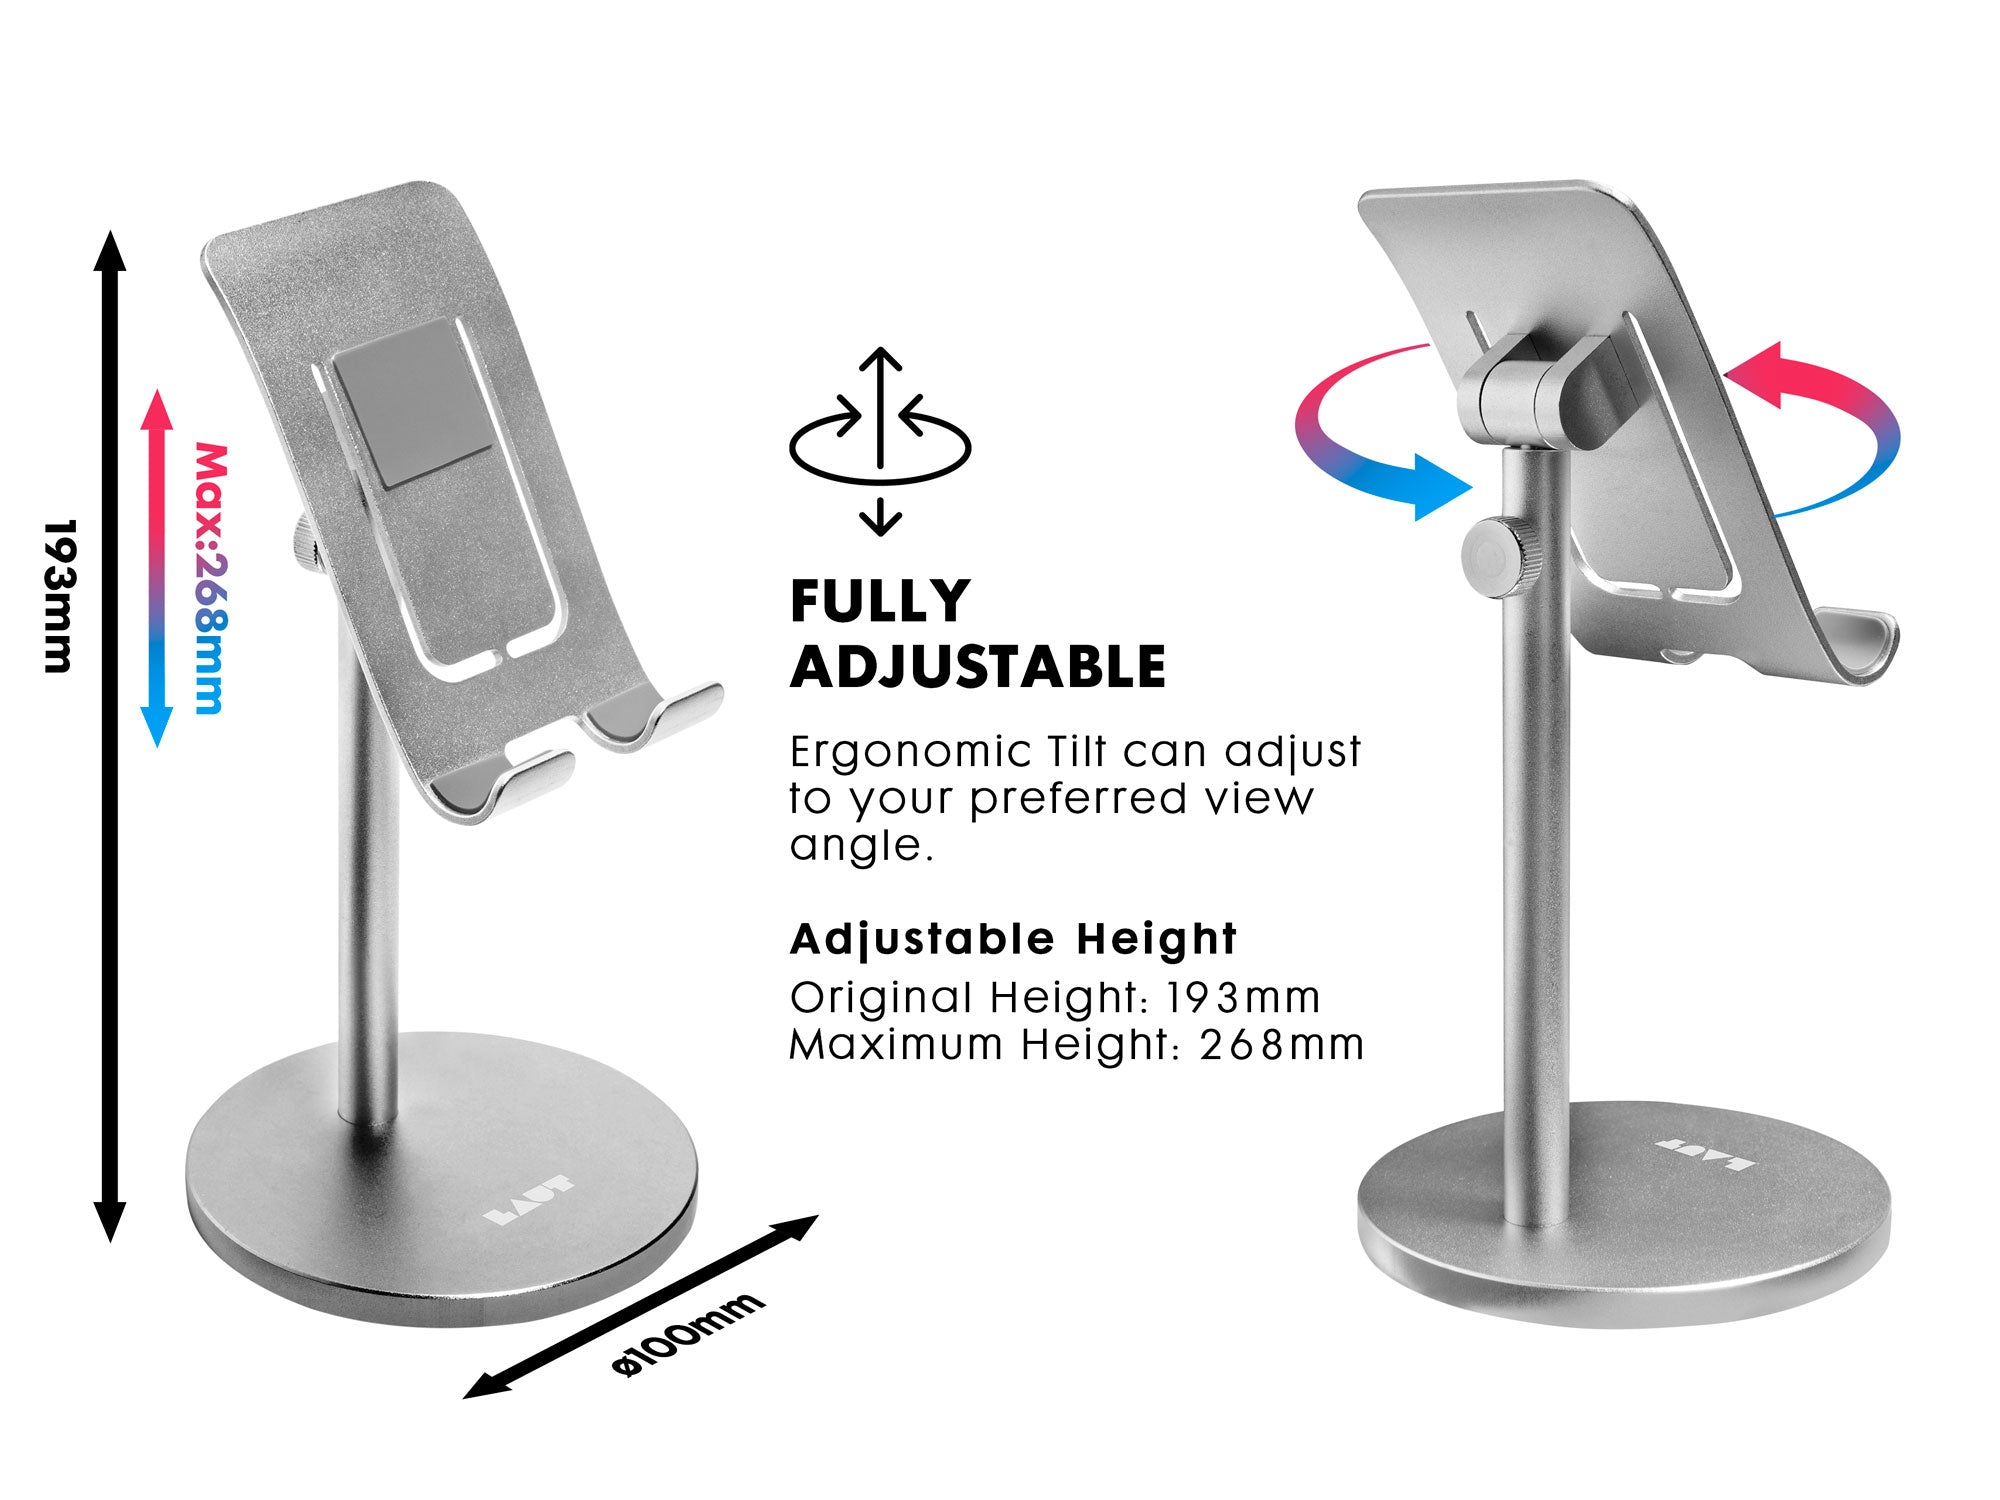 LAUT Free Stand Cell Phone Stand, Adjustable Phone Holder Stand for Desk, Universal Desktop Stand Tablet Stand